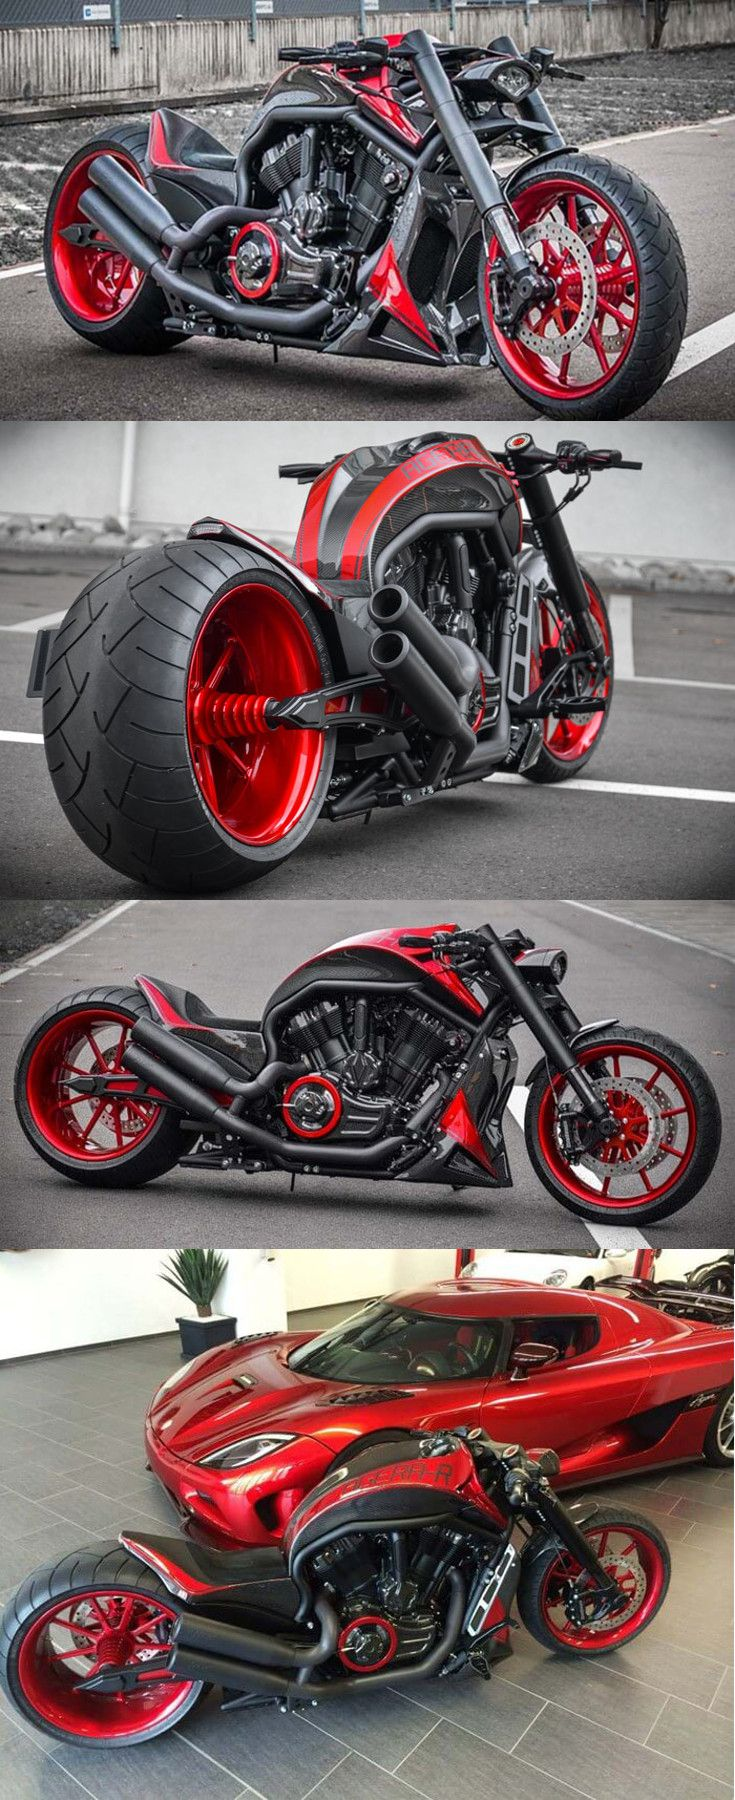 Harley Davidson V Rod Based On The Koenigsegg Agera R By No Limit Custom Nlc Com Imagens Motos Classicas Motos Importadas Motos Esportivas